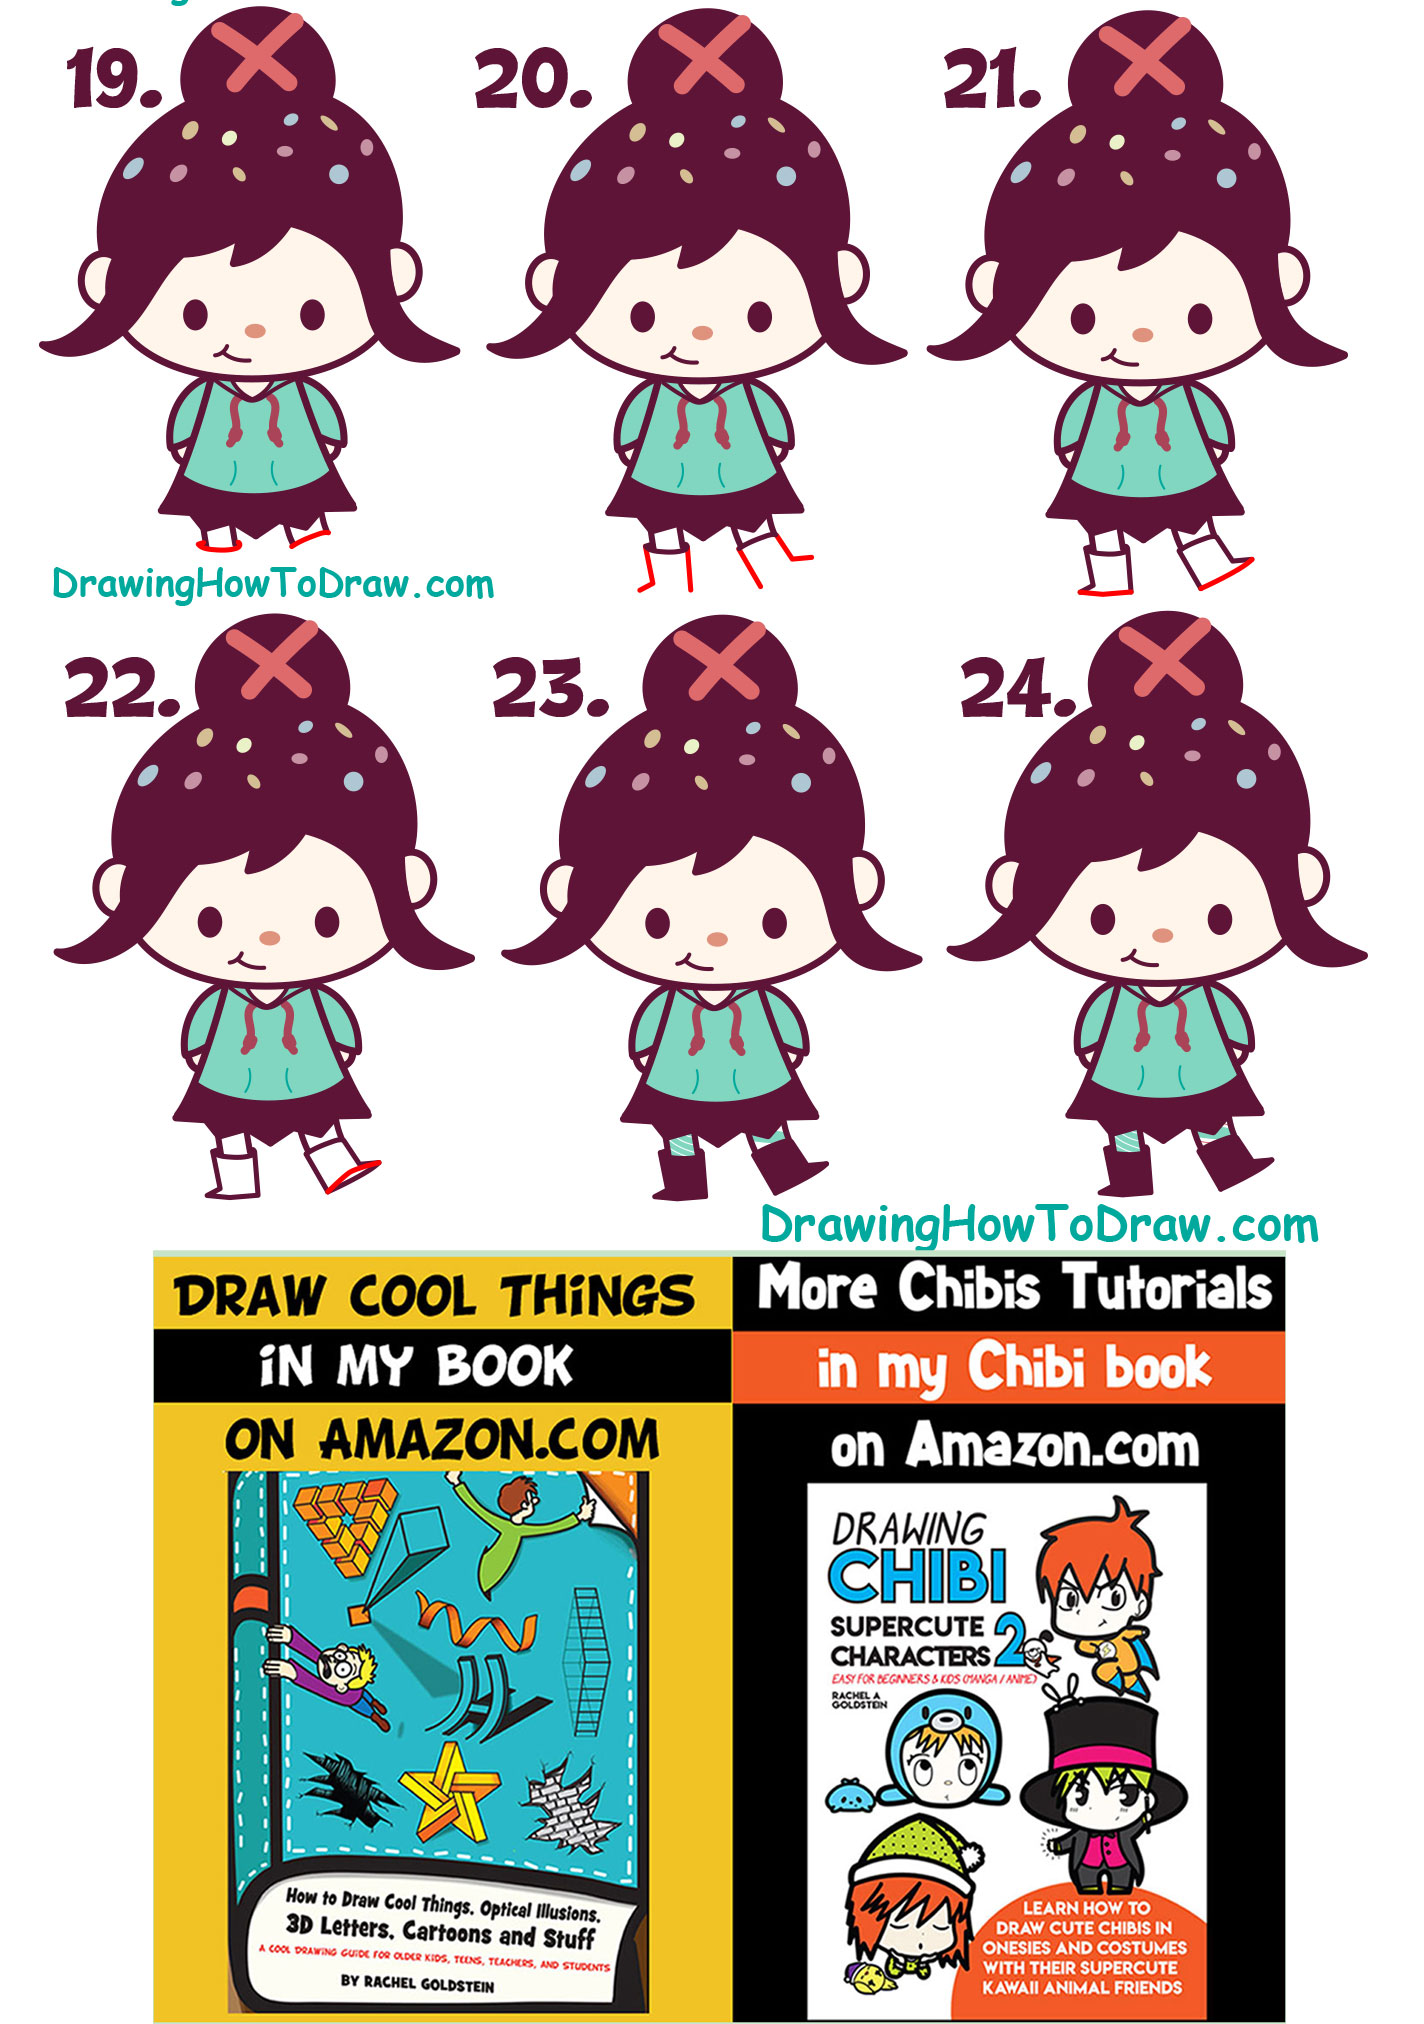 LearnHow to Draw Cute Kawaii Chibi Vanellope (Glitch) from Wreck It Ralph 2 - Easy for Kids